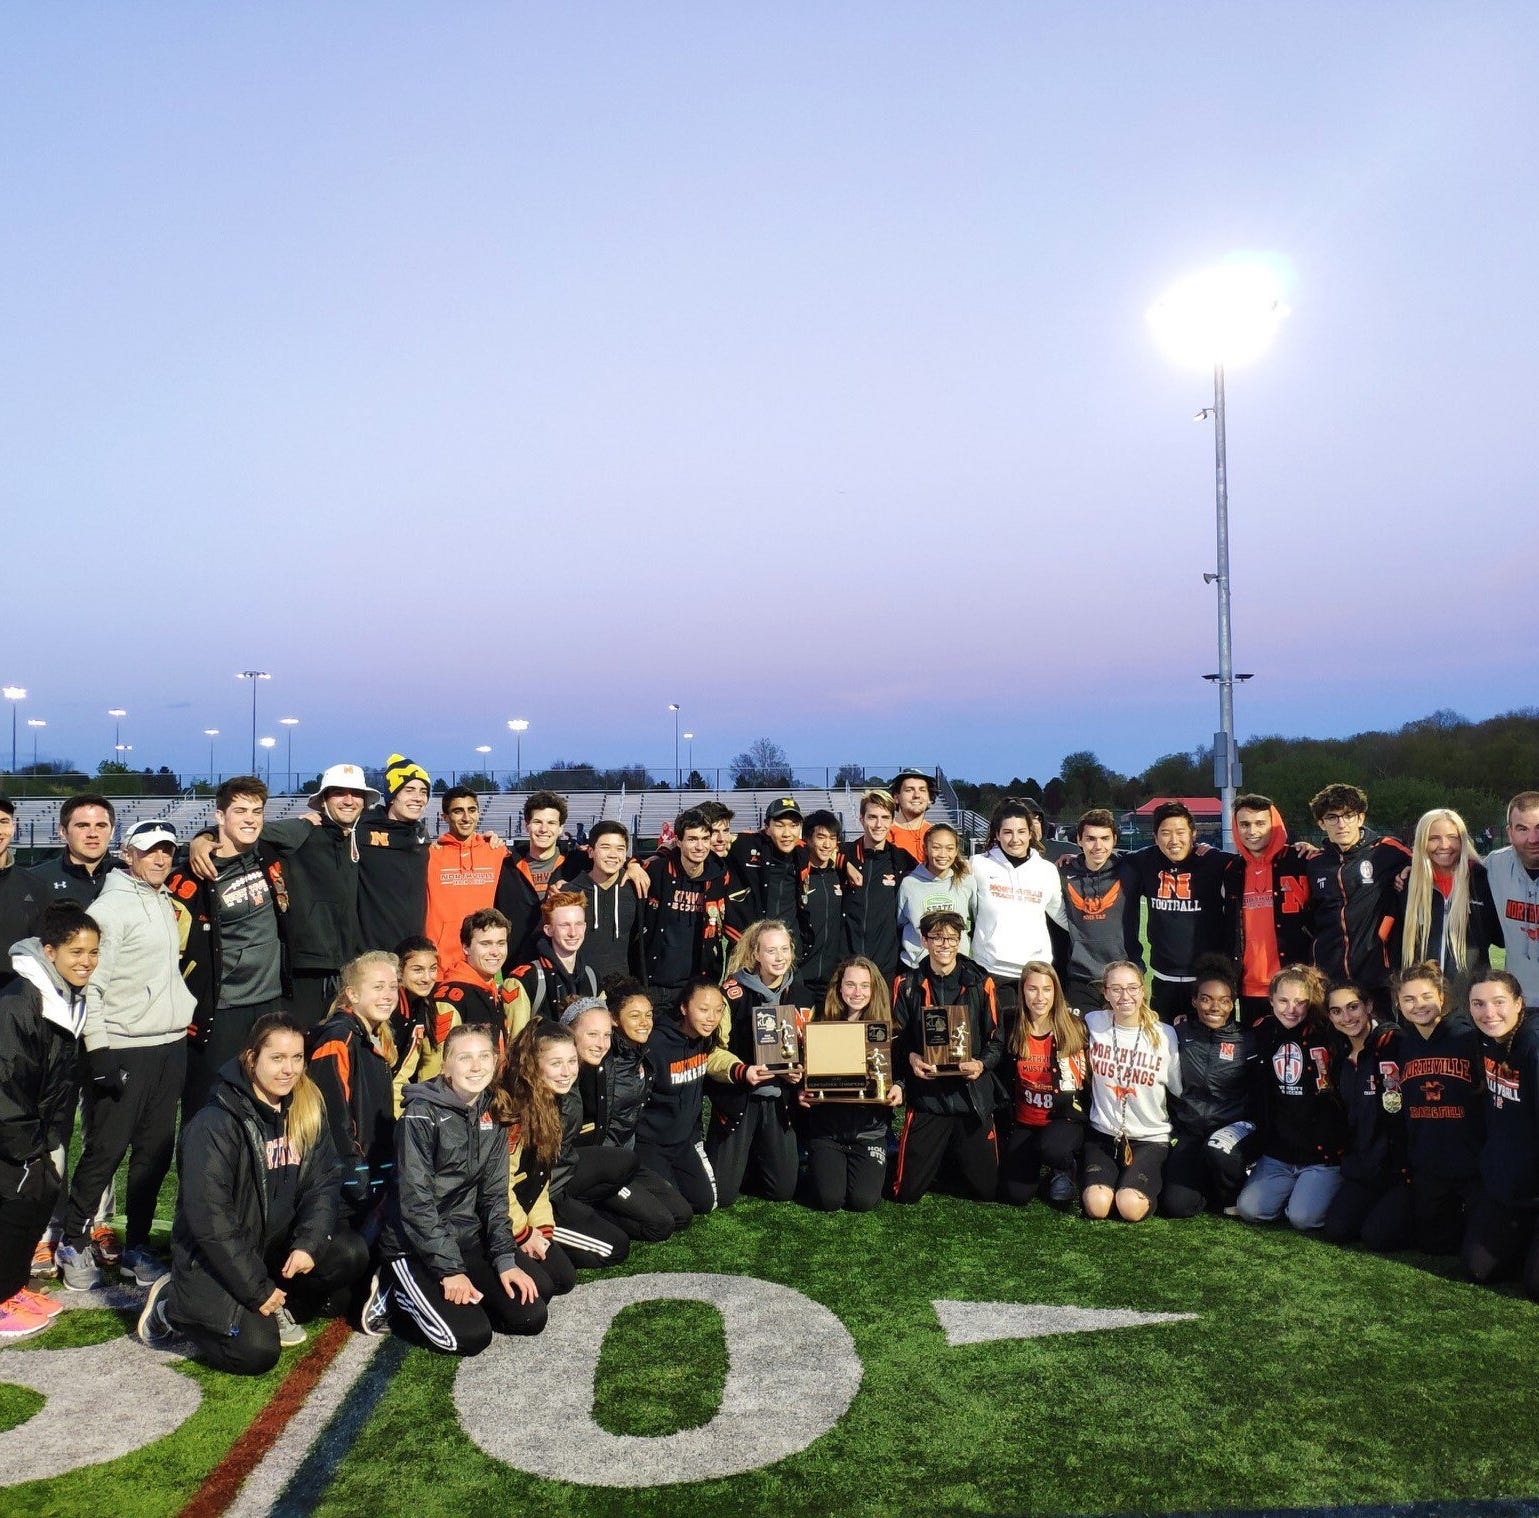 KLAA track championship results: Northville girls take first-place, boys take second